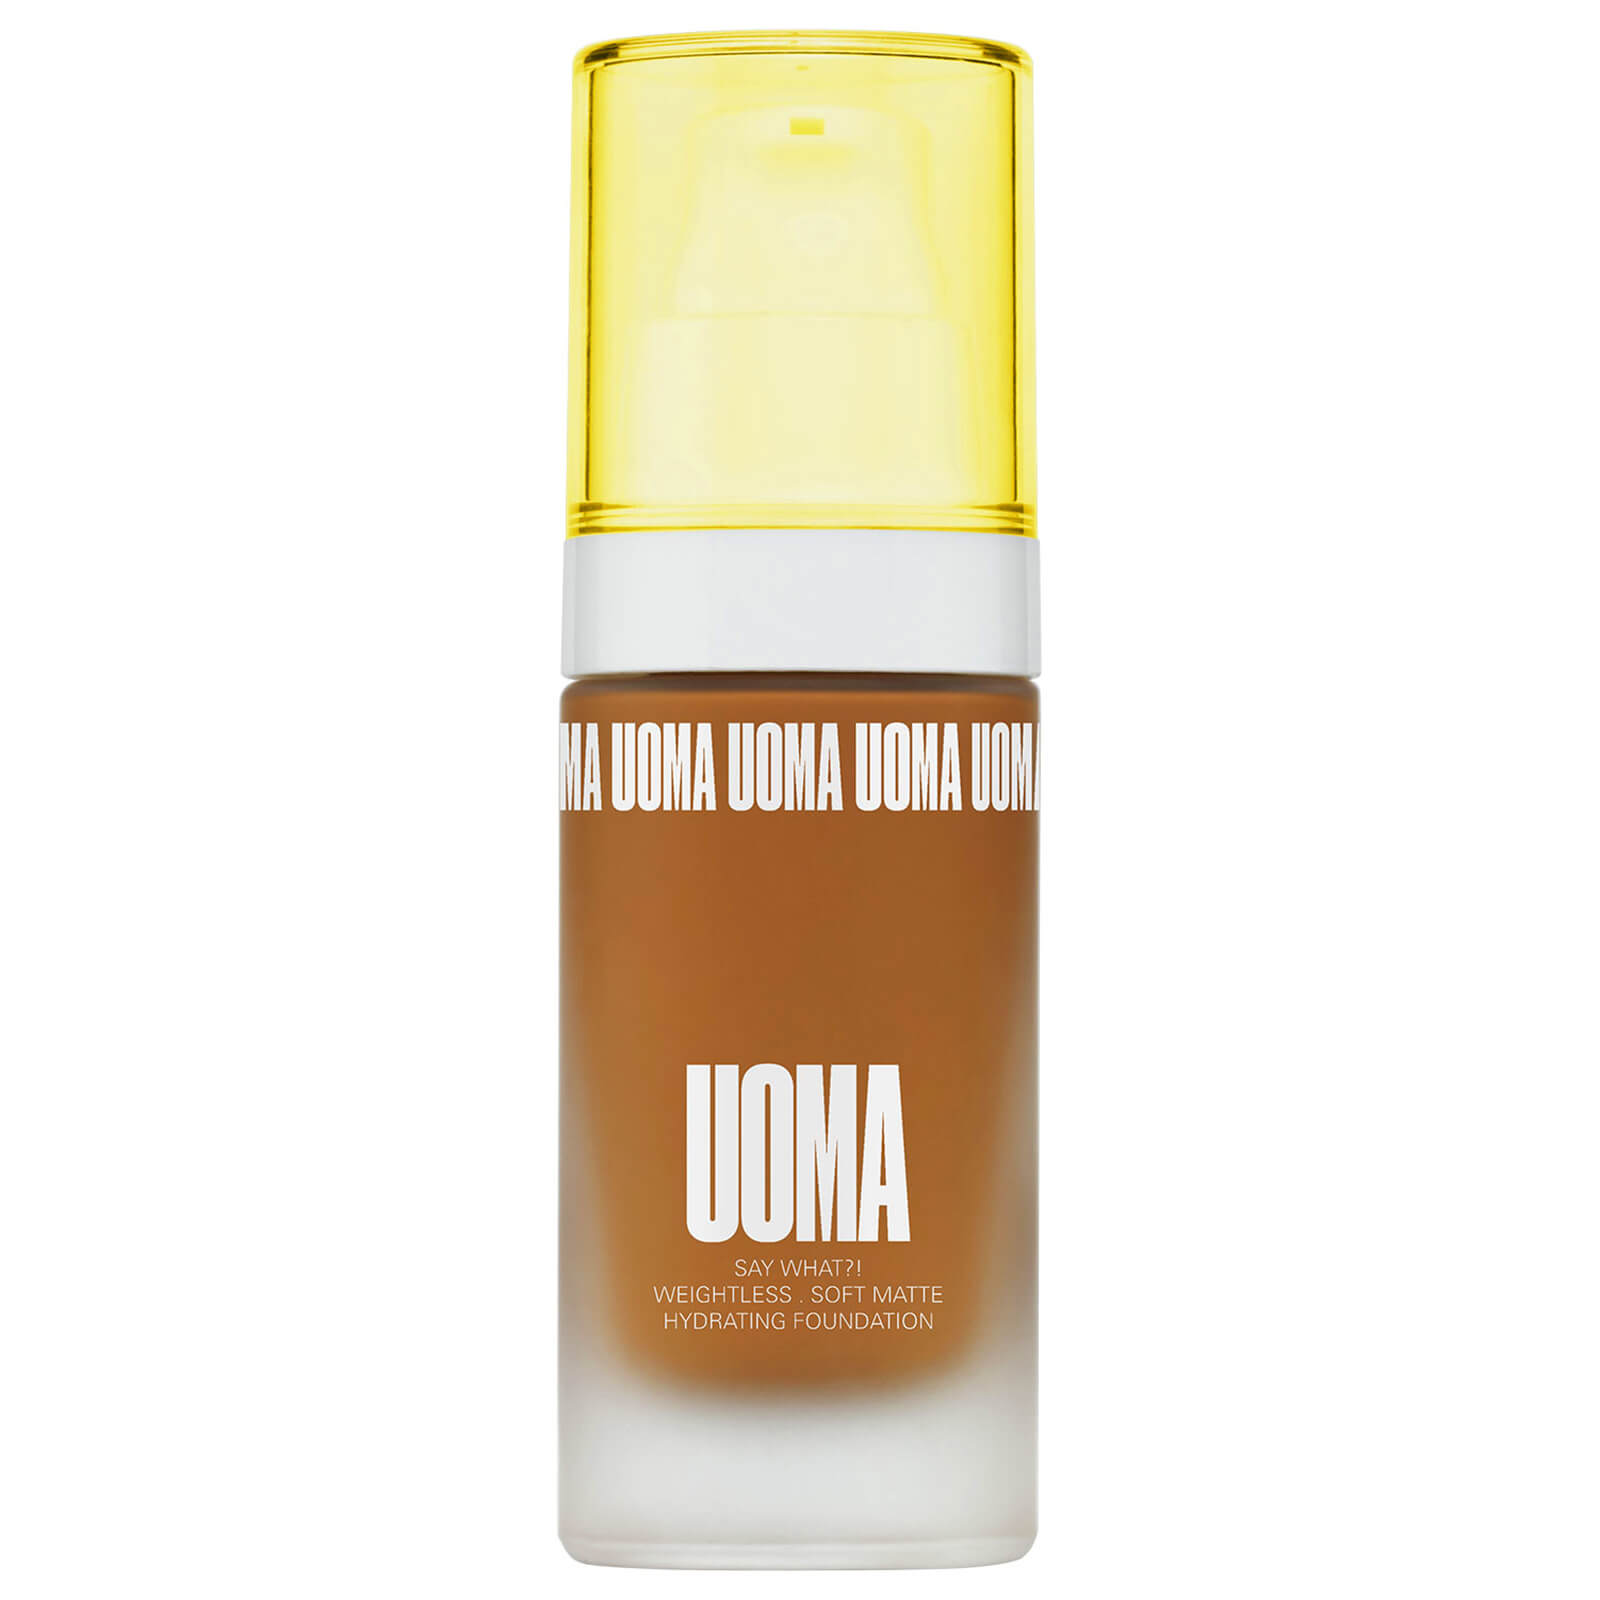 UOMA Beauty Say What Foundation 30ml (Various Shades) - Bronze Venus T3W